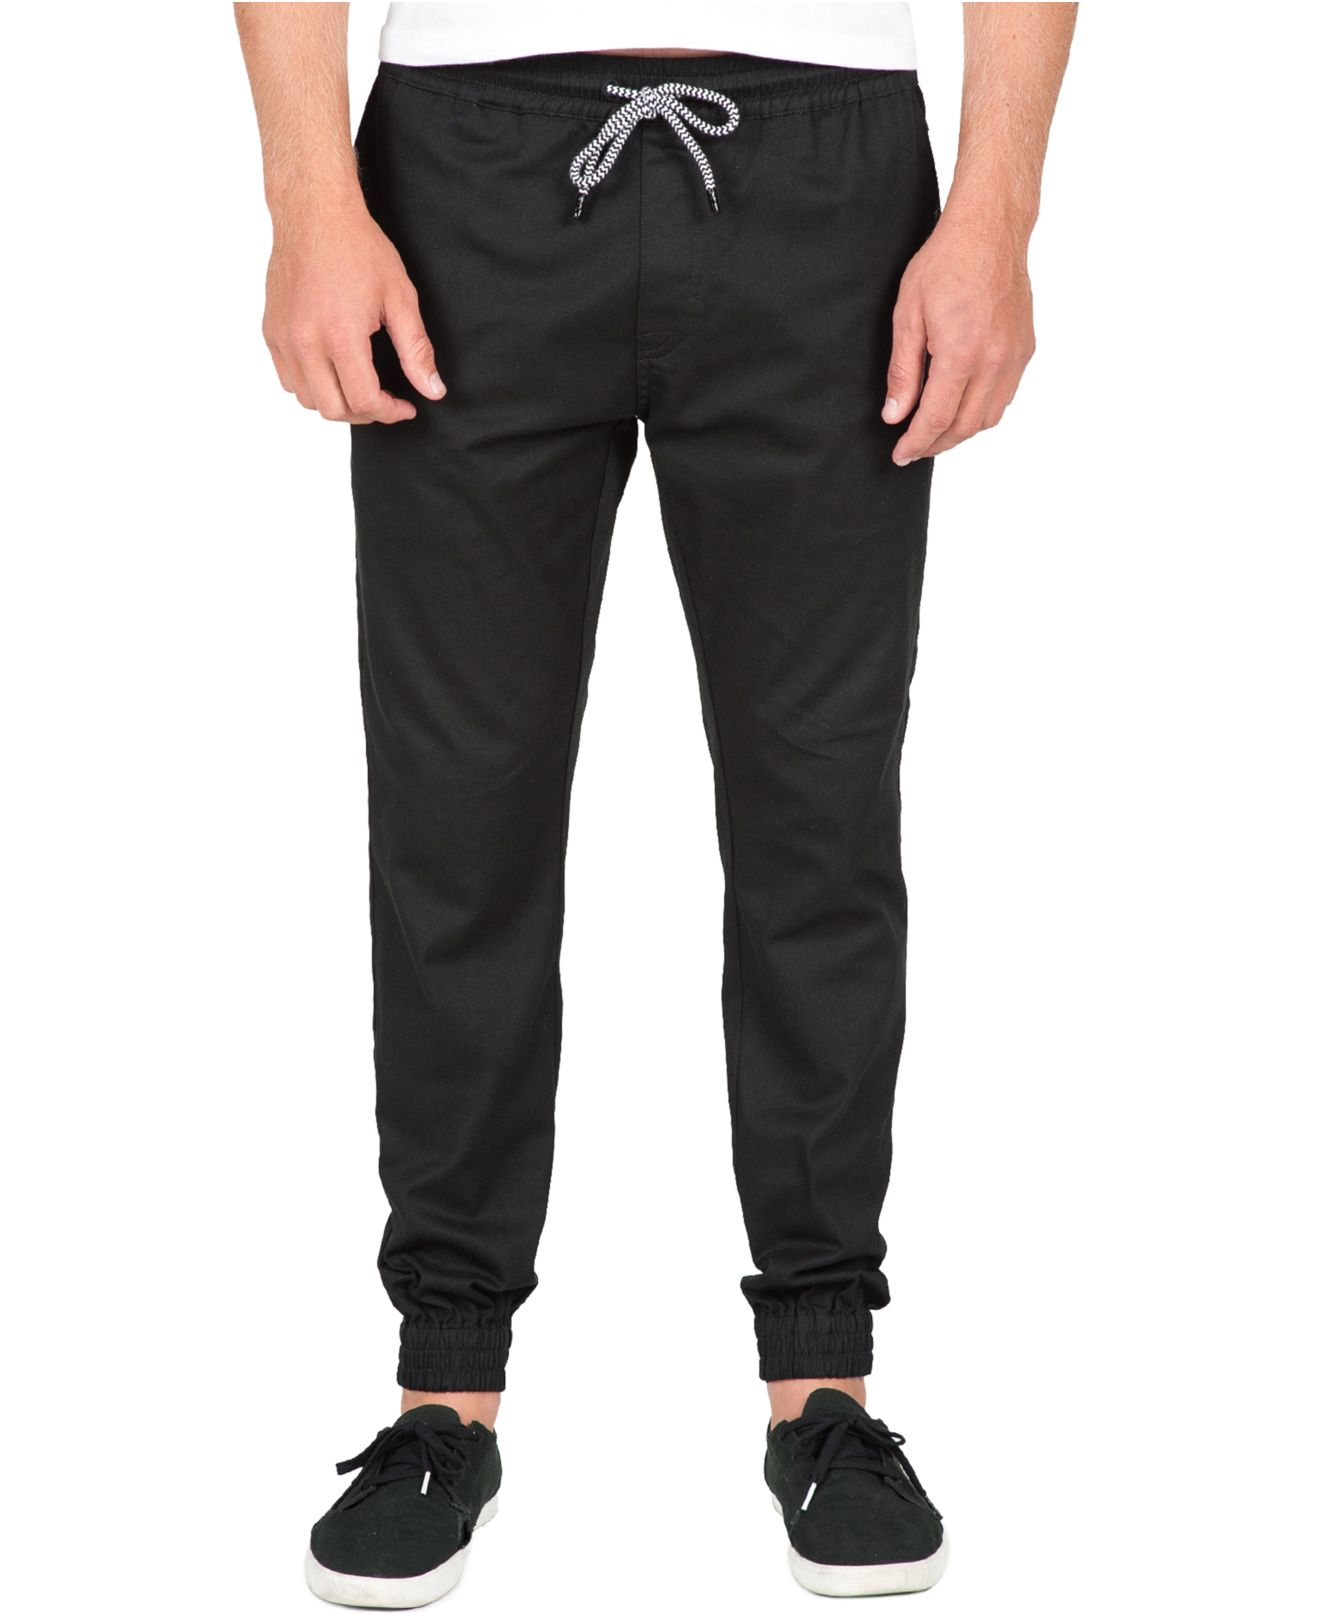 Find Men's Slim Joggers & Sweatpants at fbcpmhoe.cf Enjoy free shipping and returns with NikePlus.